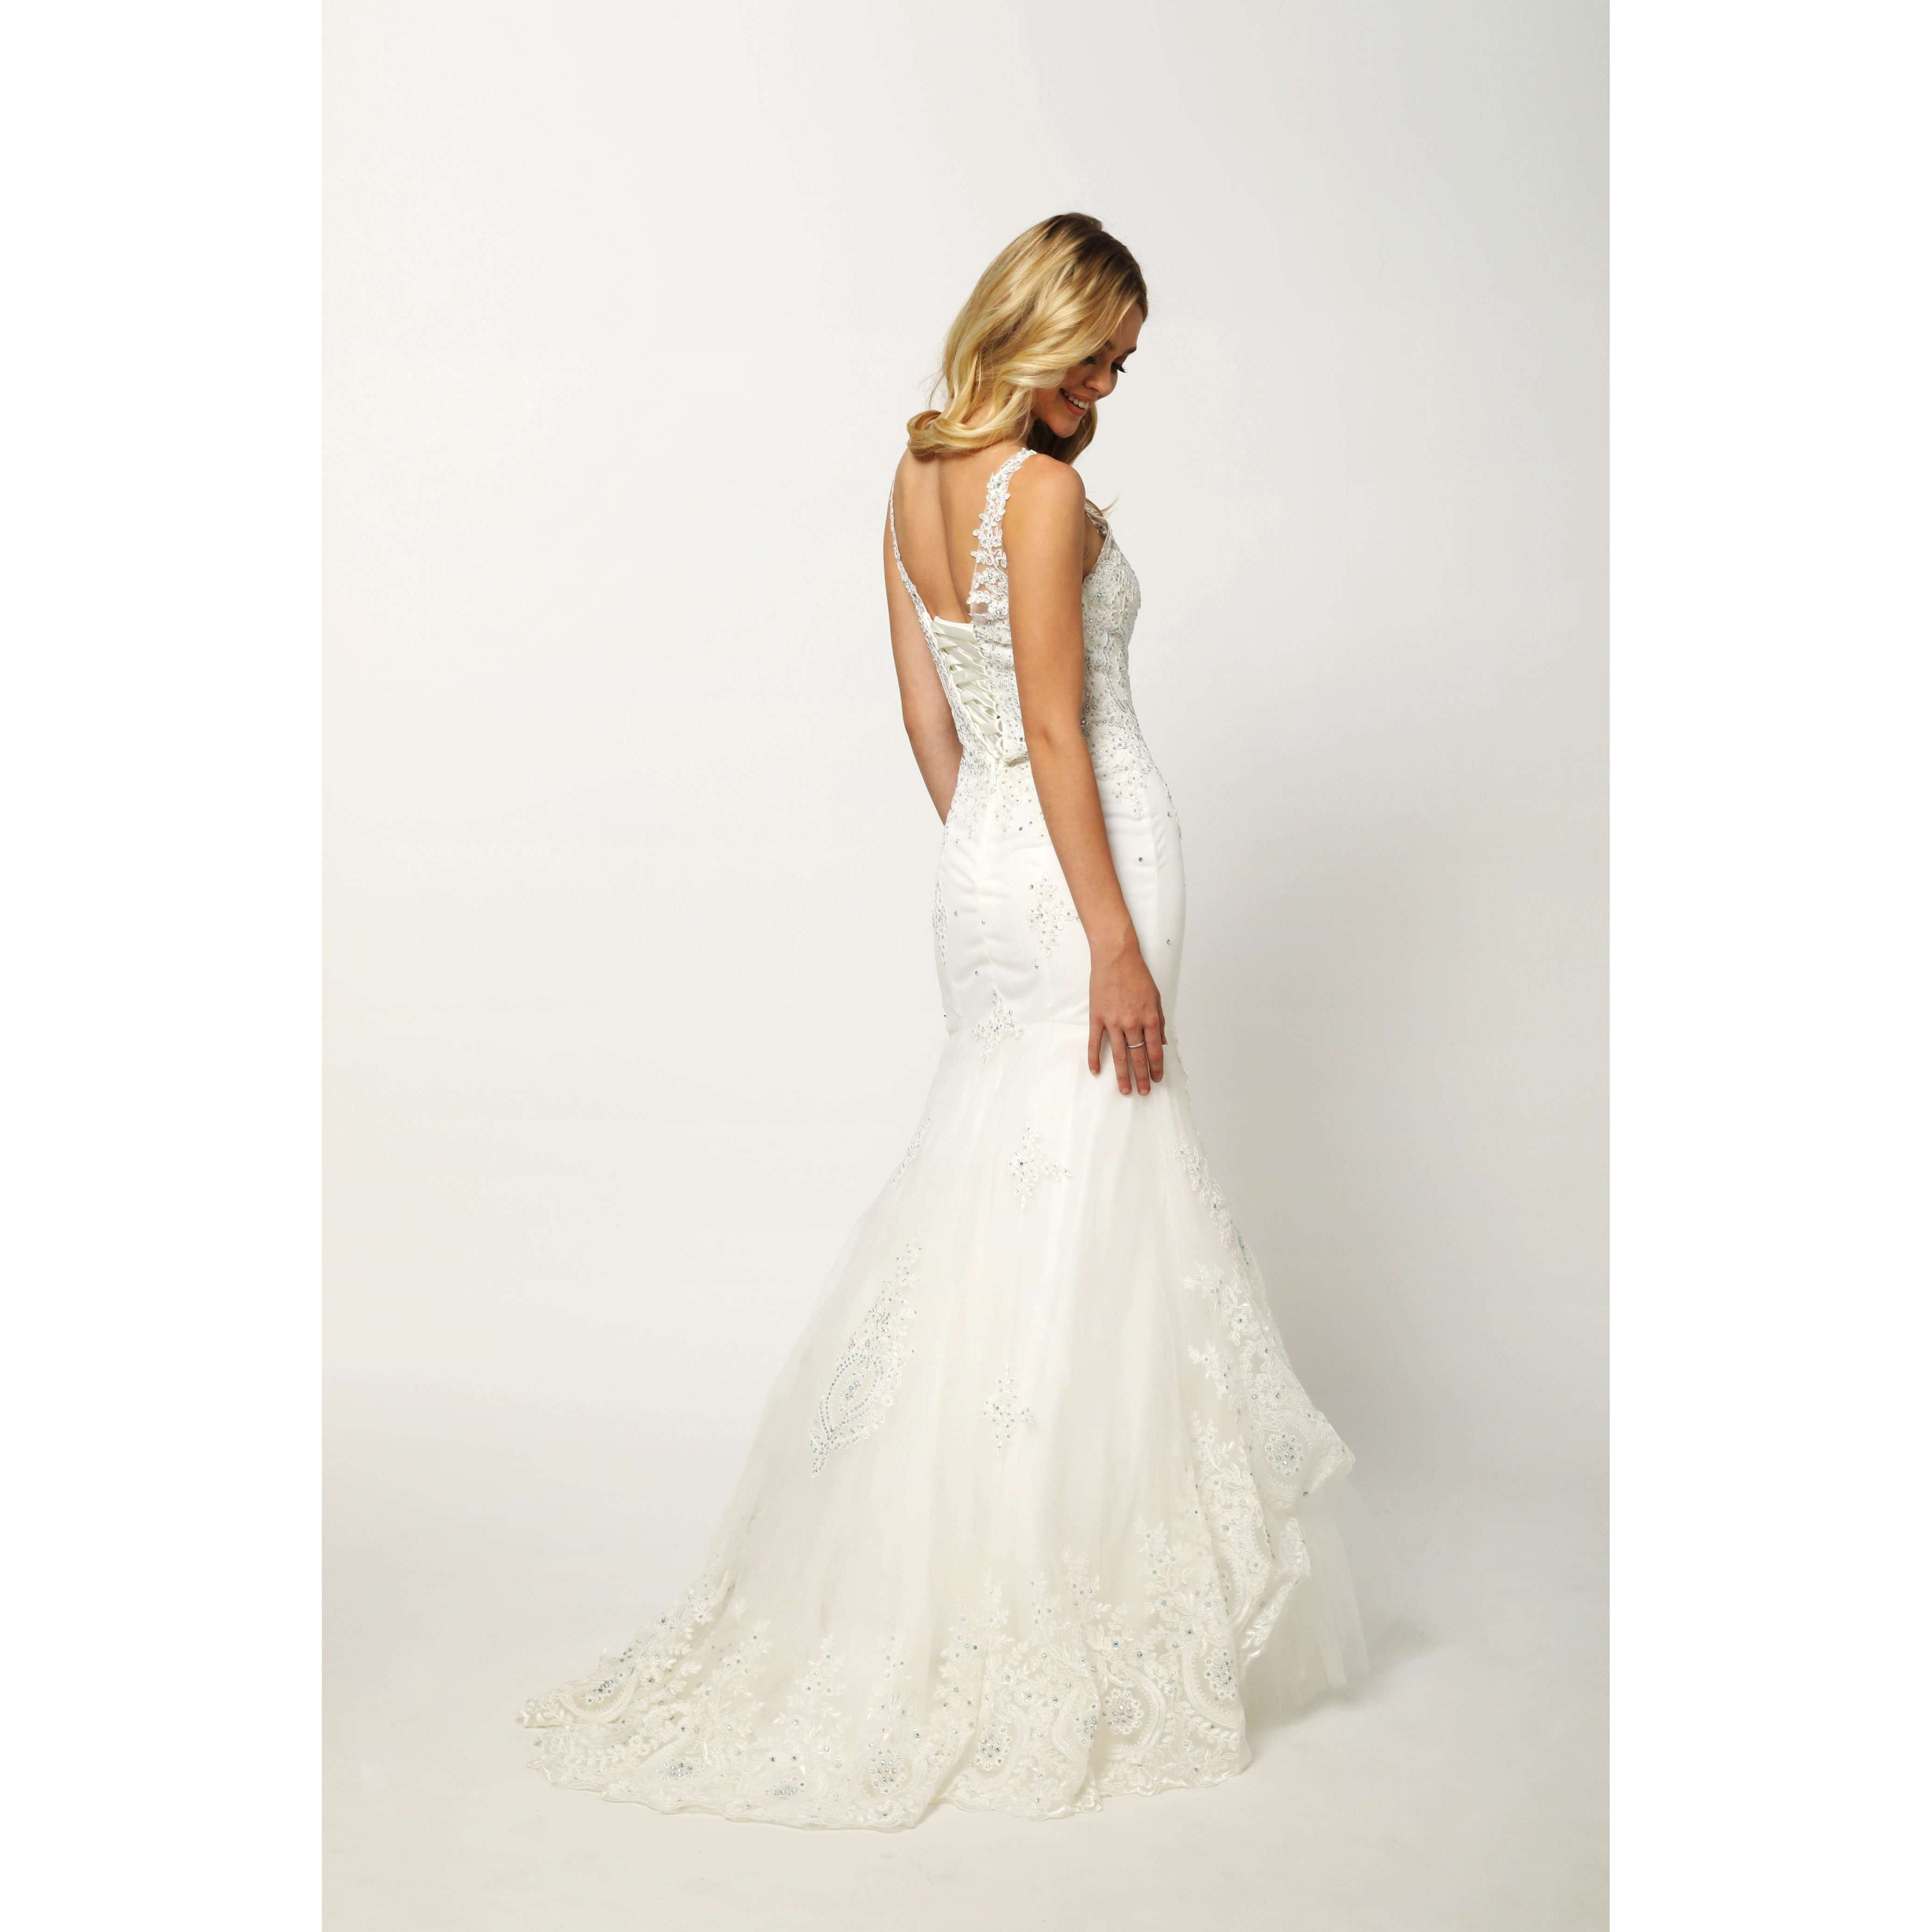 Embellished Lace Mermaid Wedding Dress 654W - Julietdresses